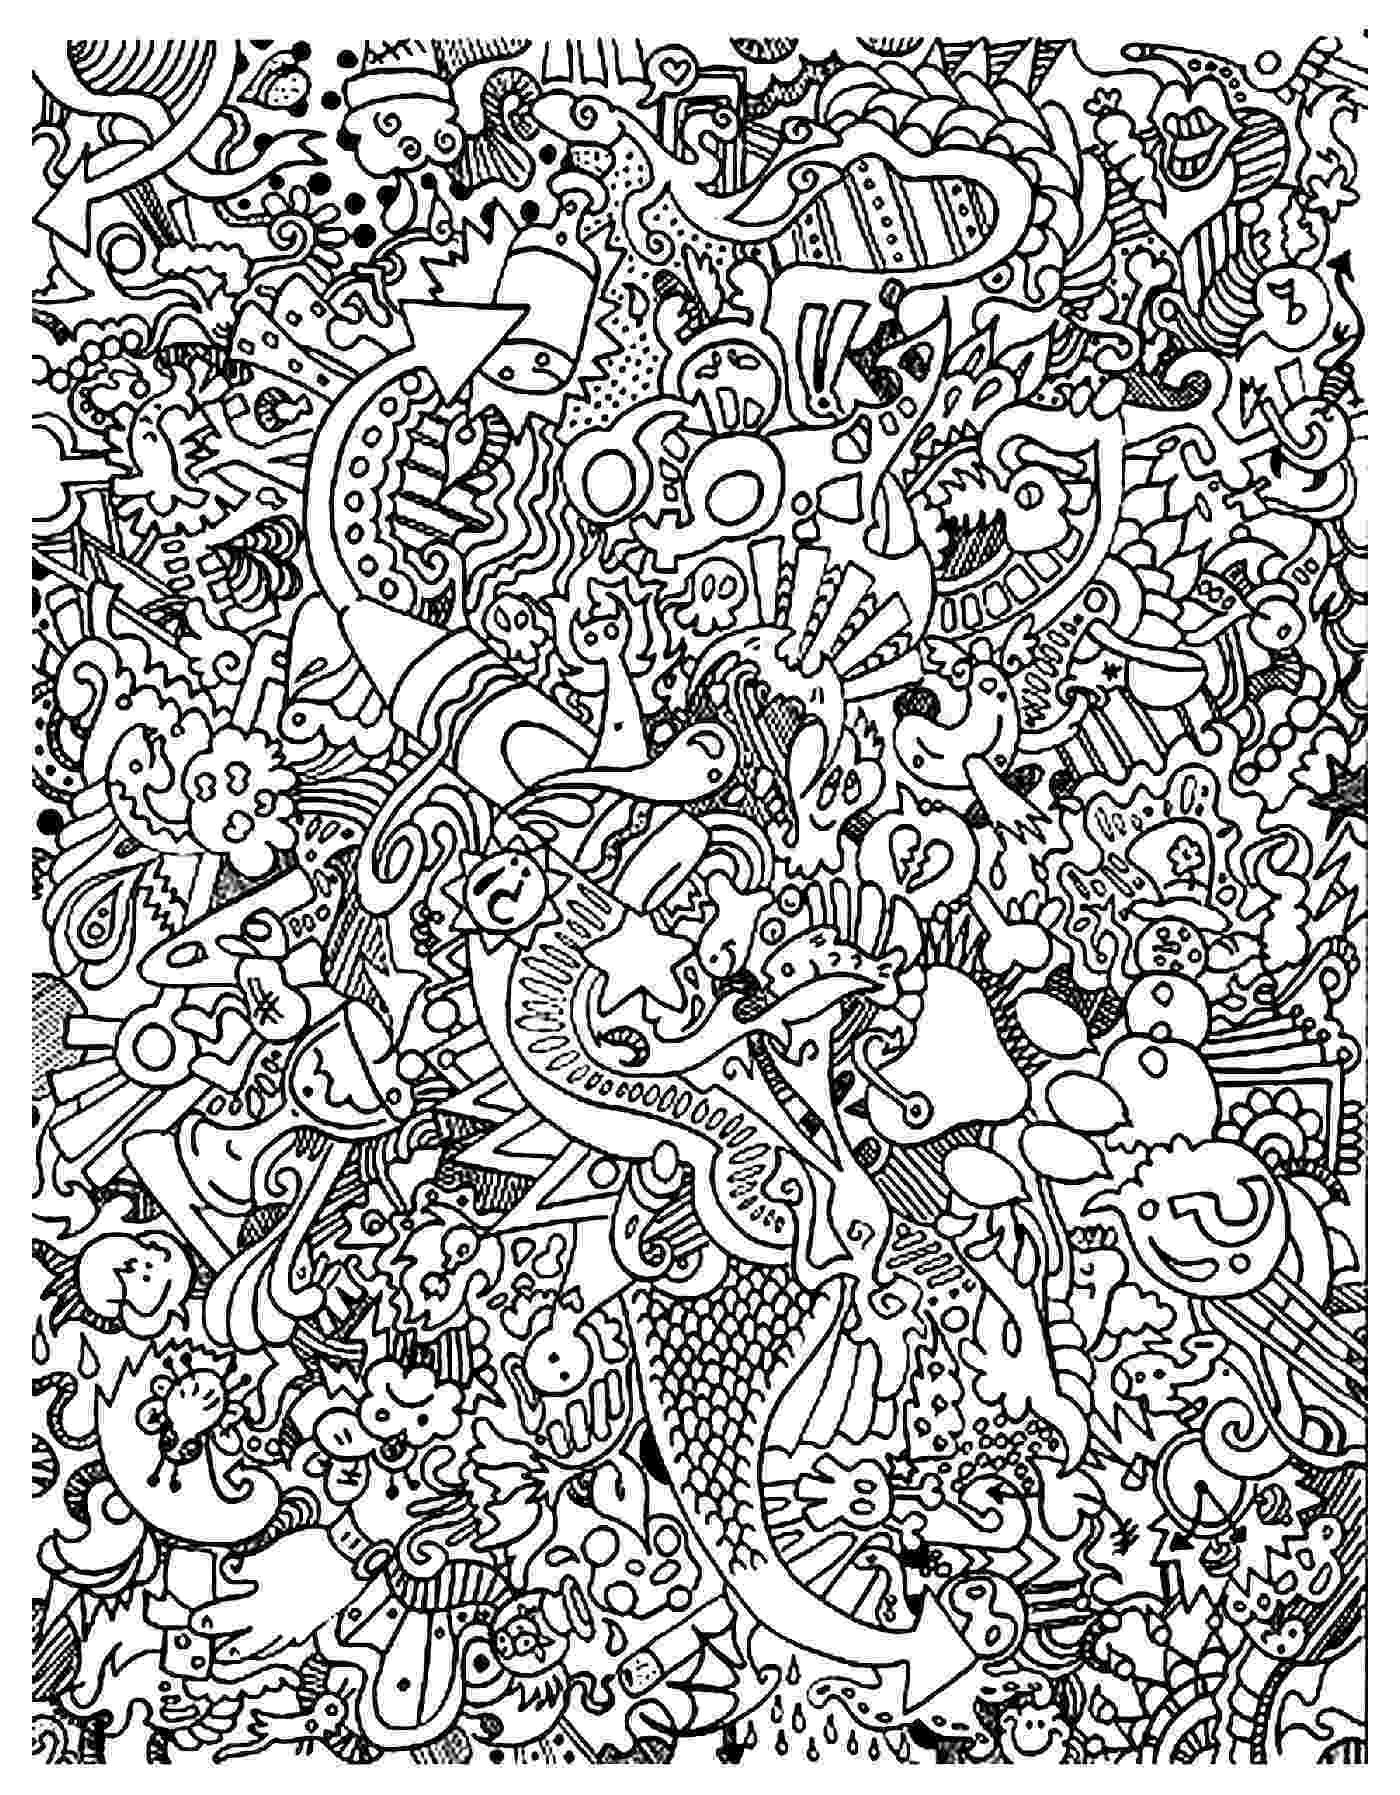 doodle art colouring abstract doodle coloring page free printable coloring pages doodle colouring art